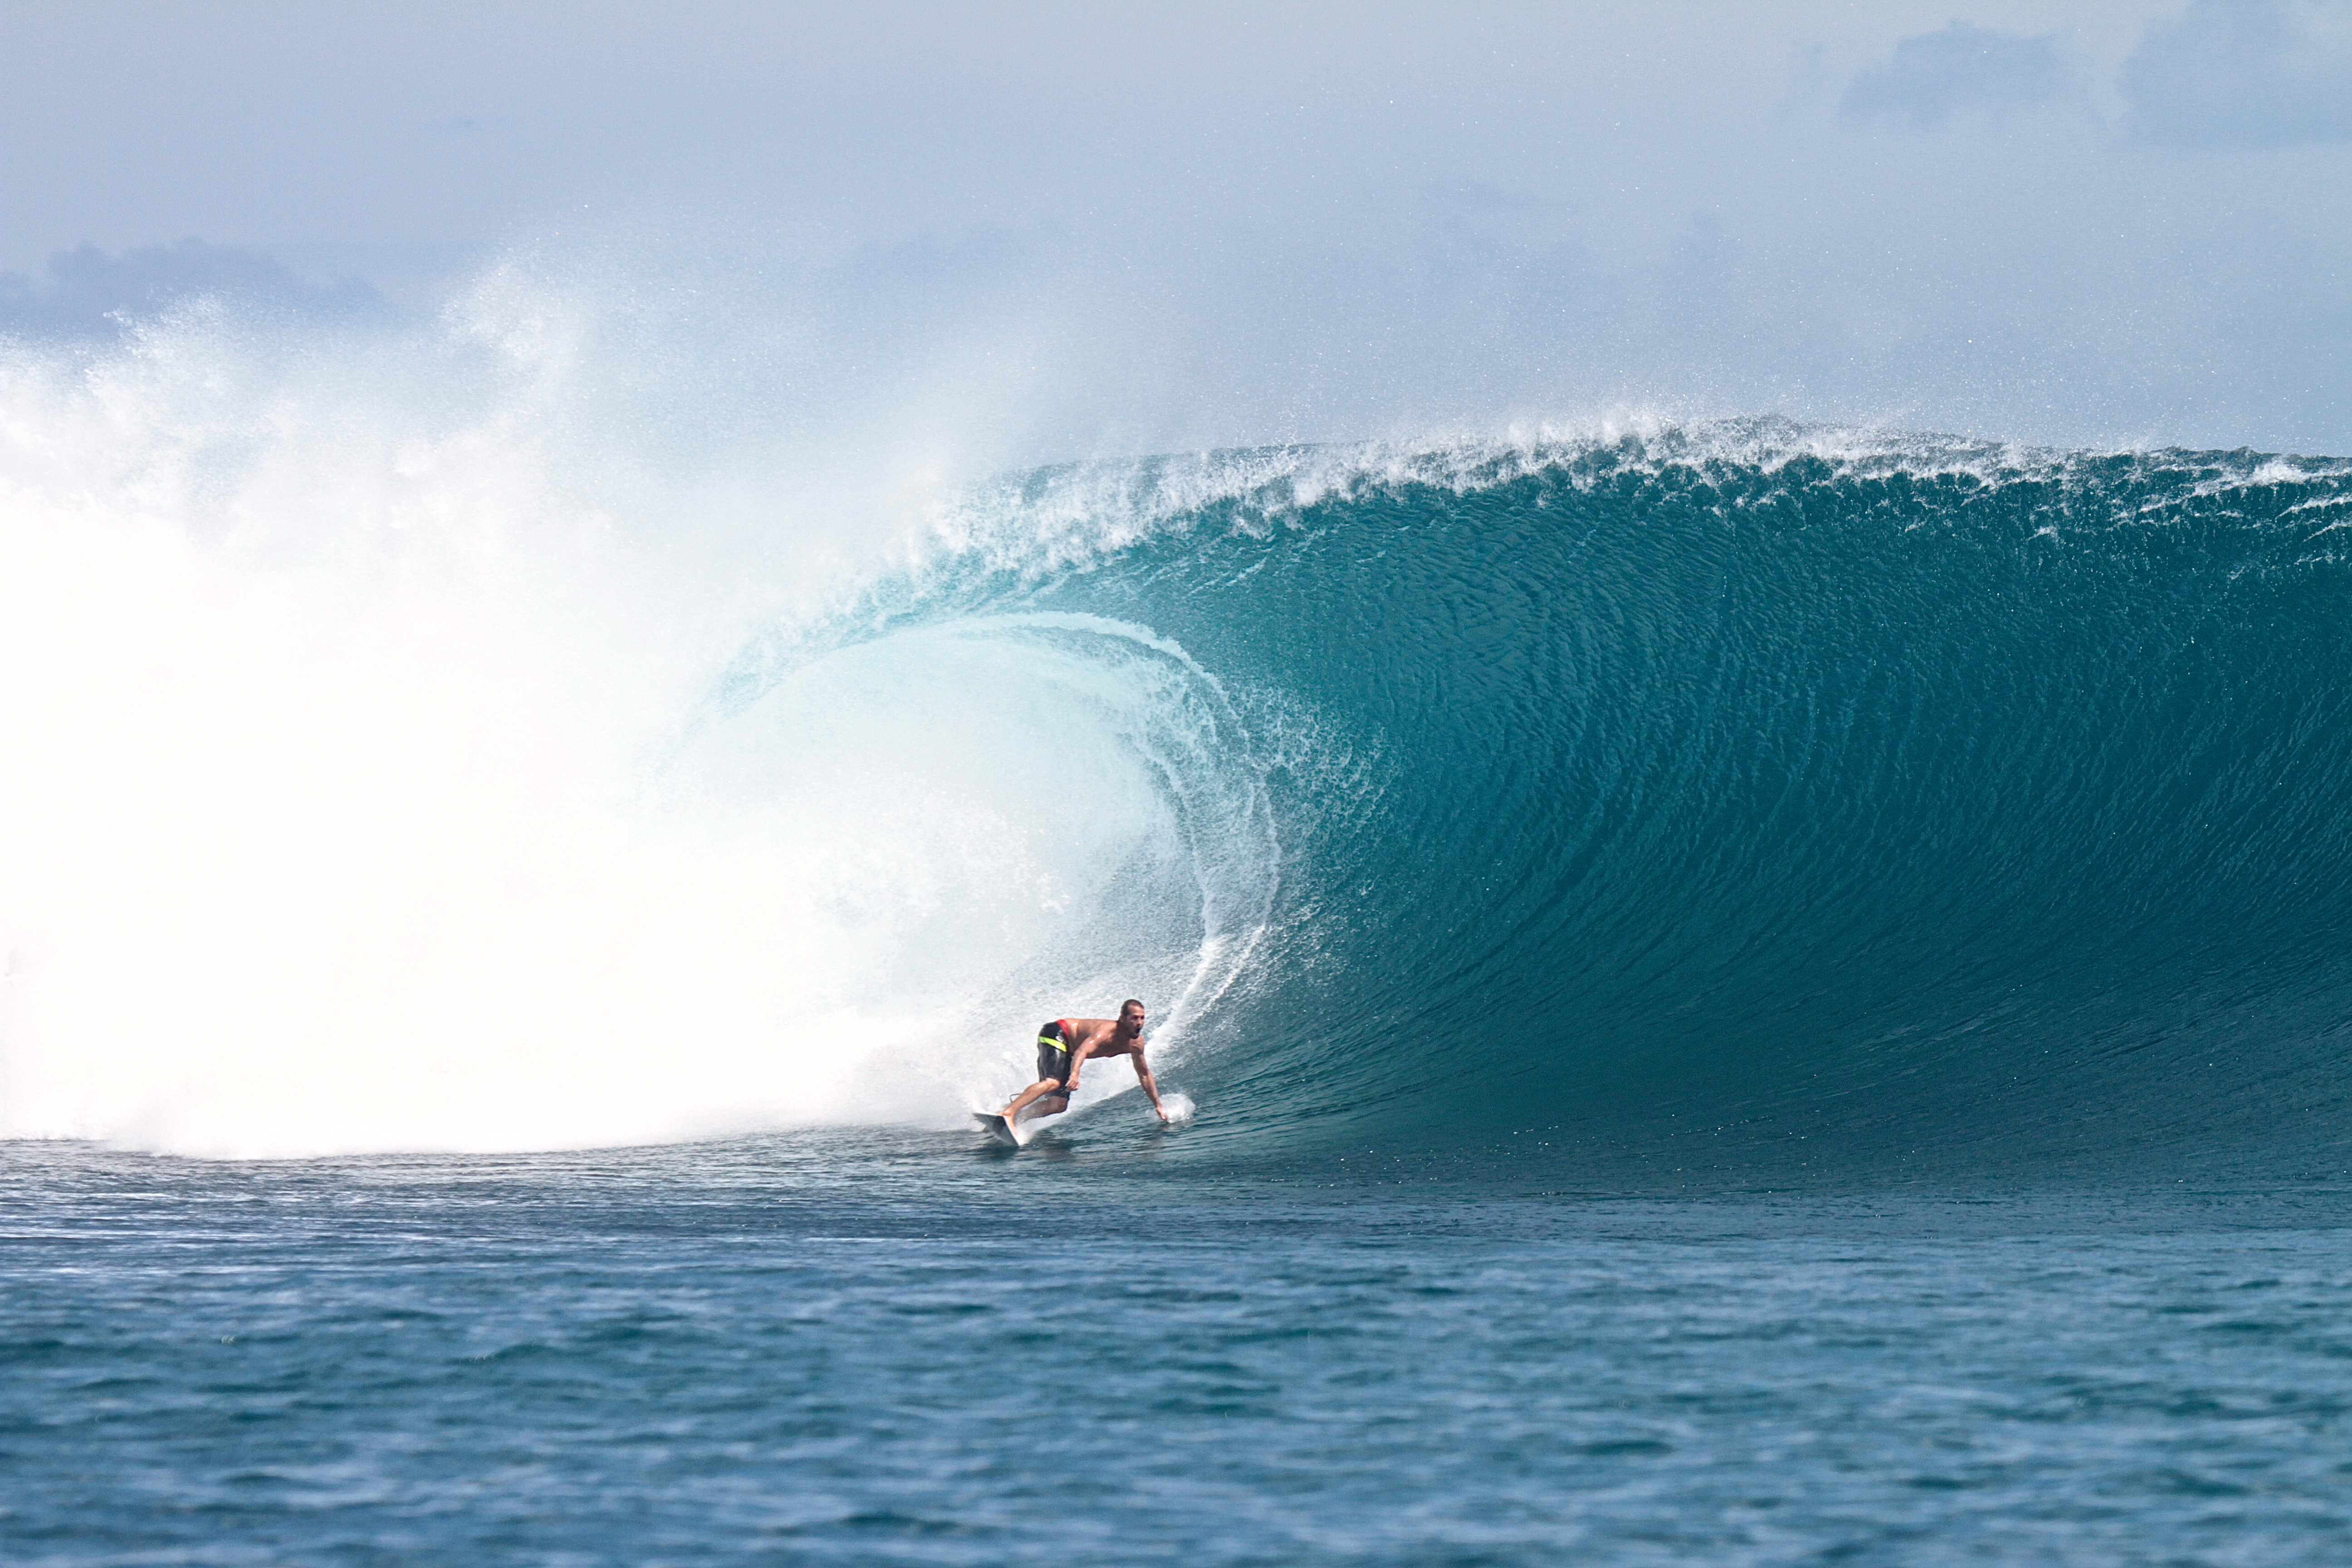 Surfing with The Best Waves in G-Land